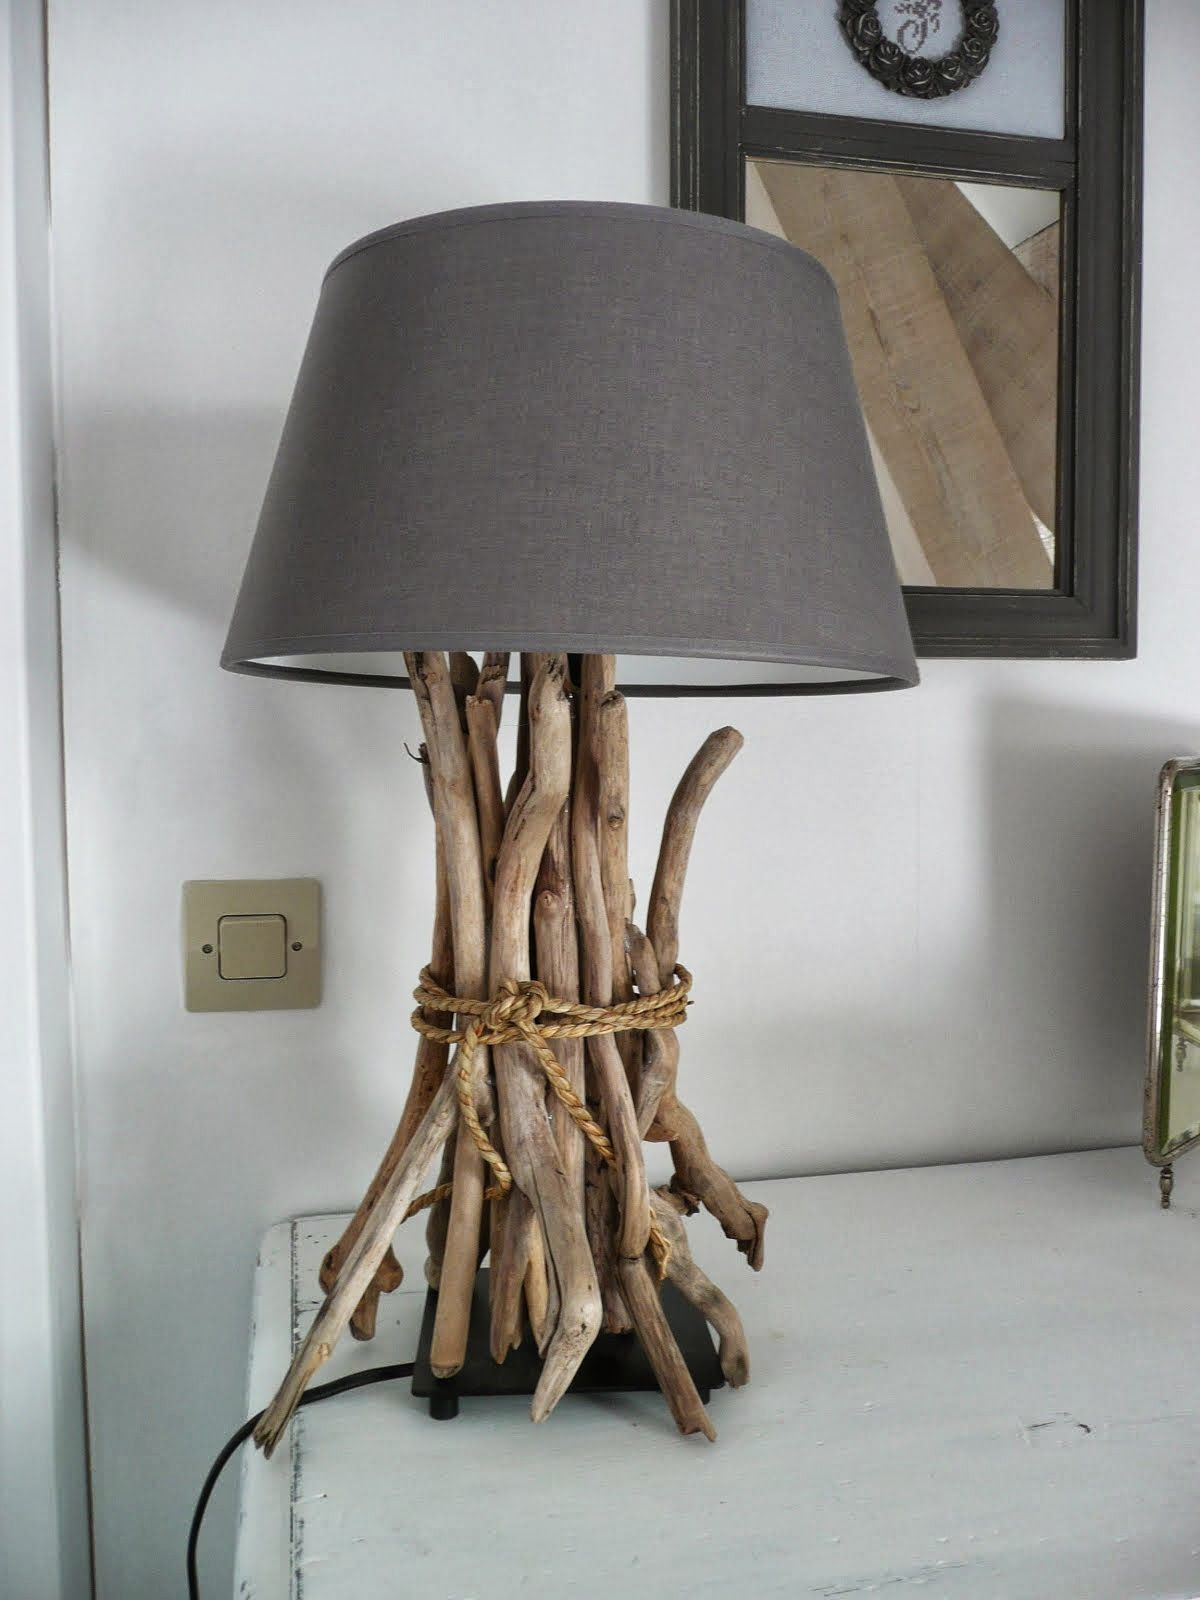 lighting cool small table shades shade base wood good bungalow only navy blue ceramic lamps touch australia alia lamp